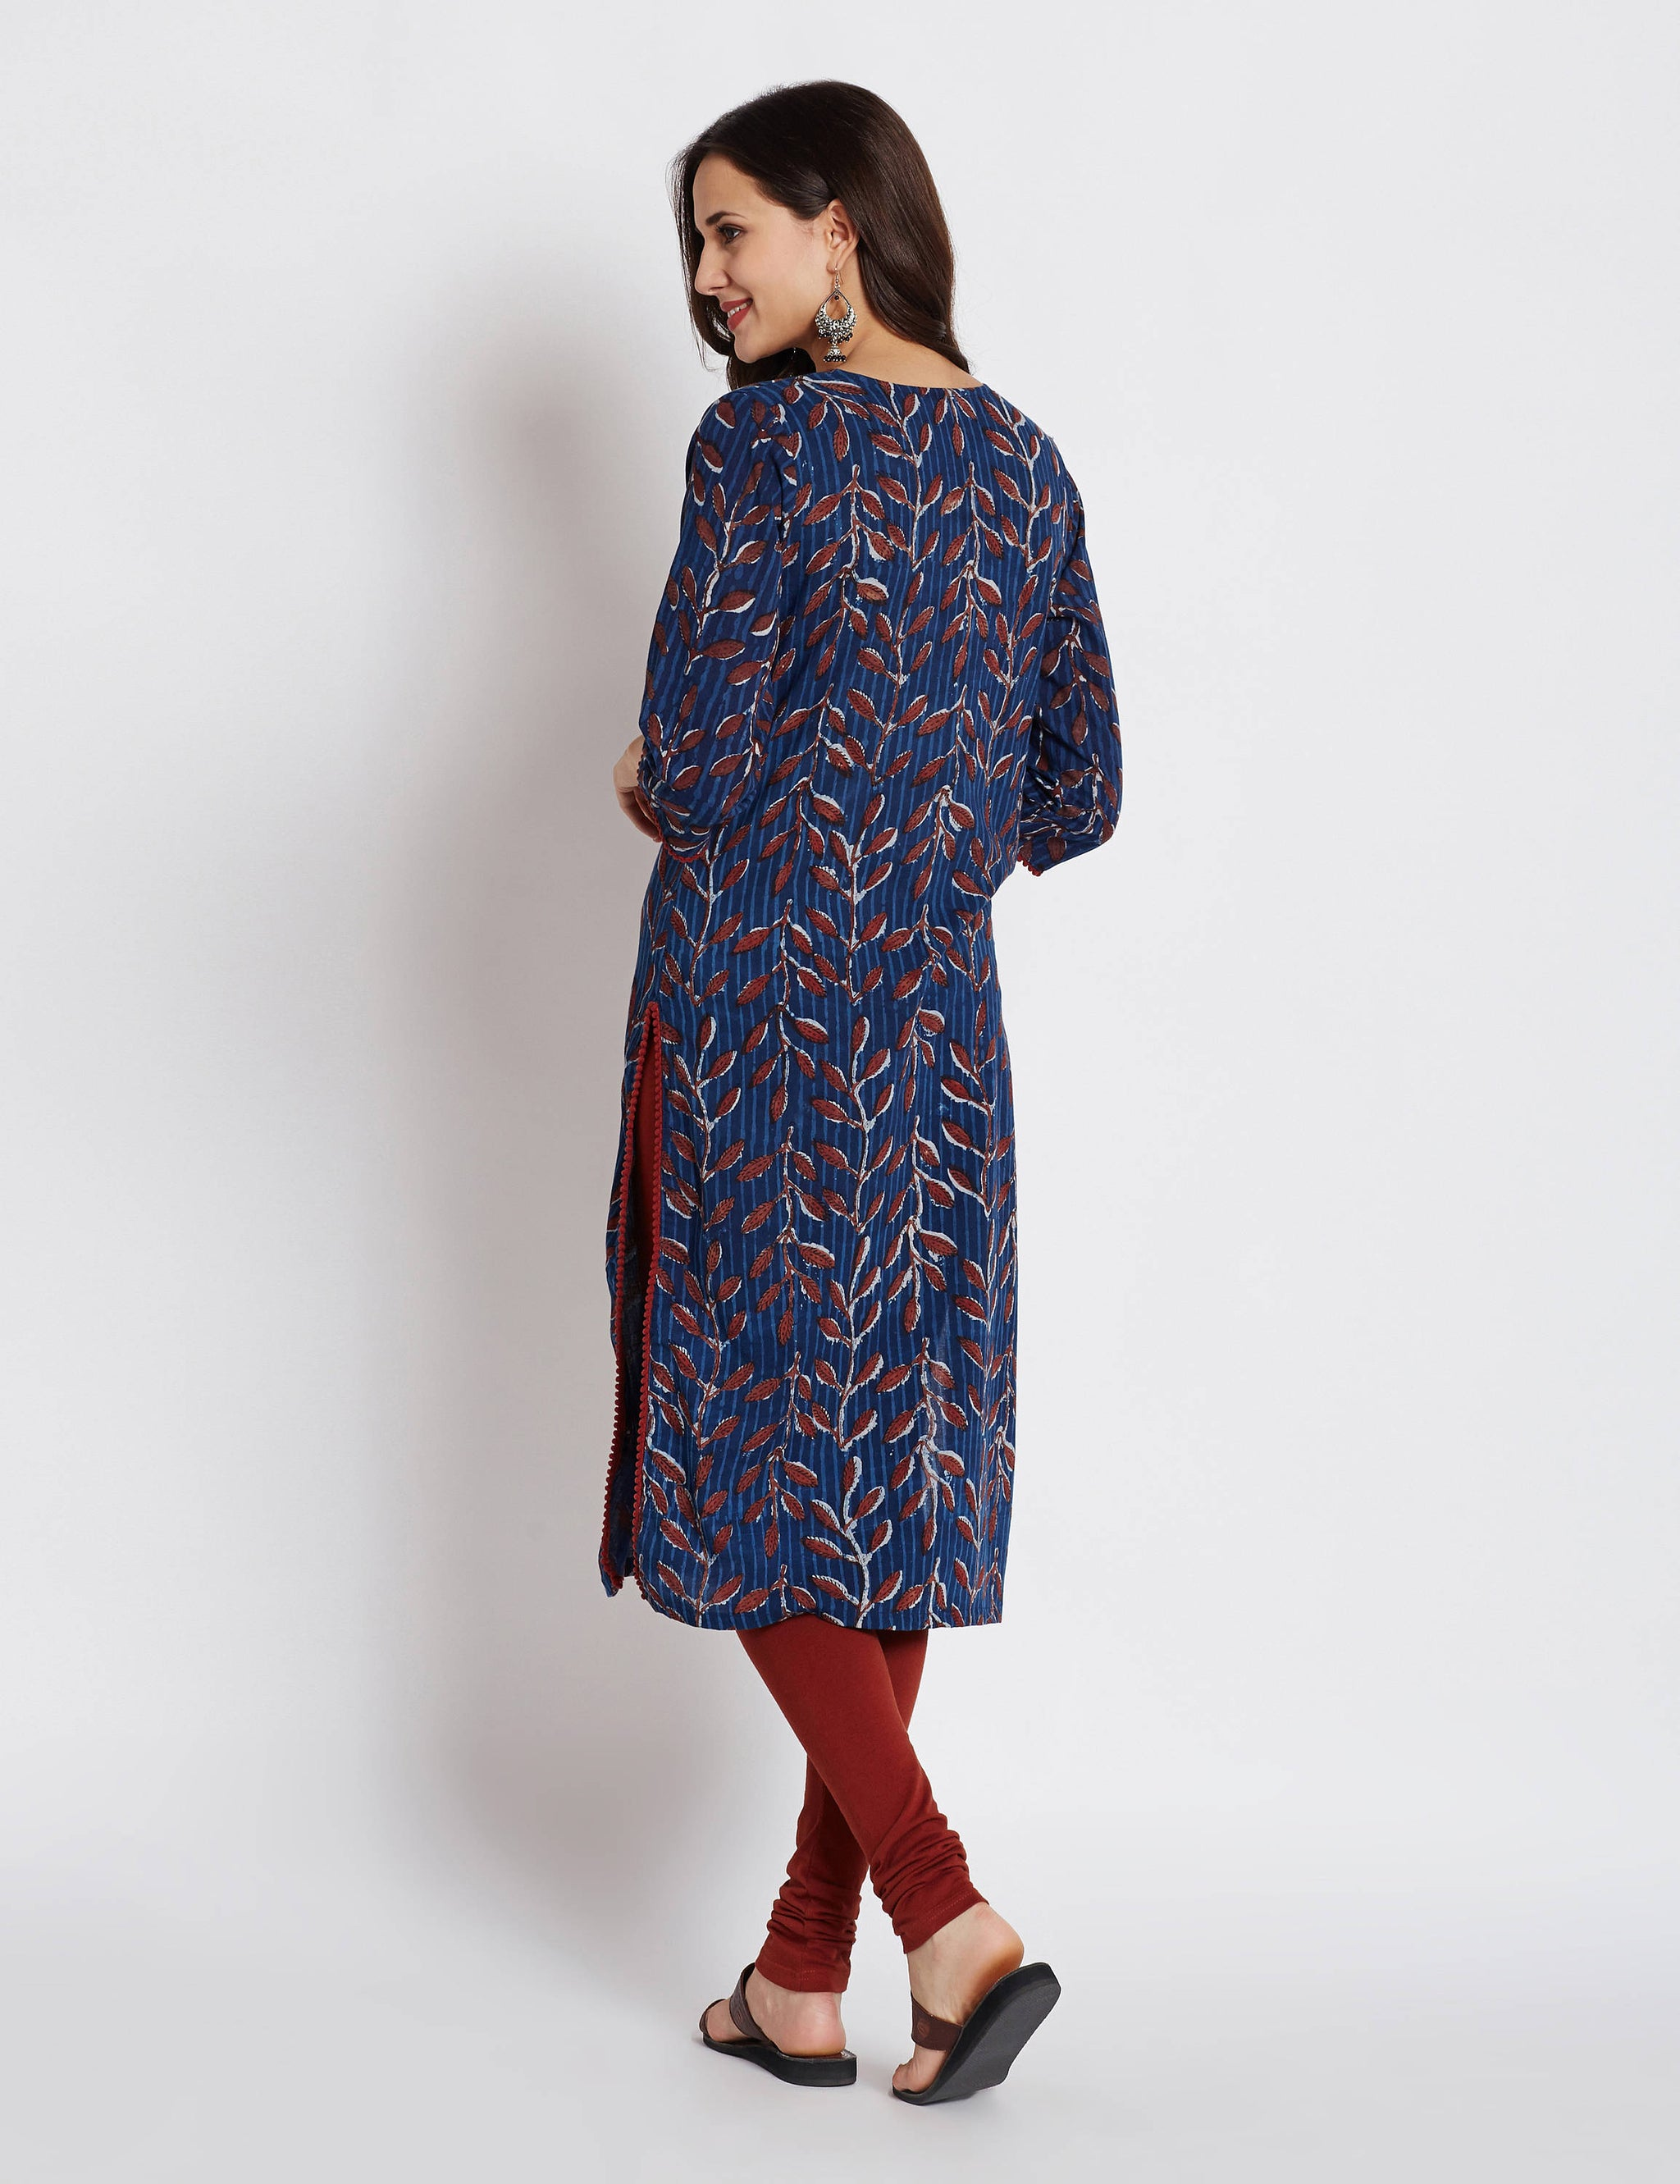 Indigo Hand block printed ethnic long Indian pocket kurta with pompom lace and tassel